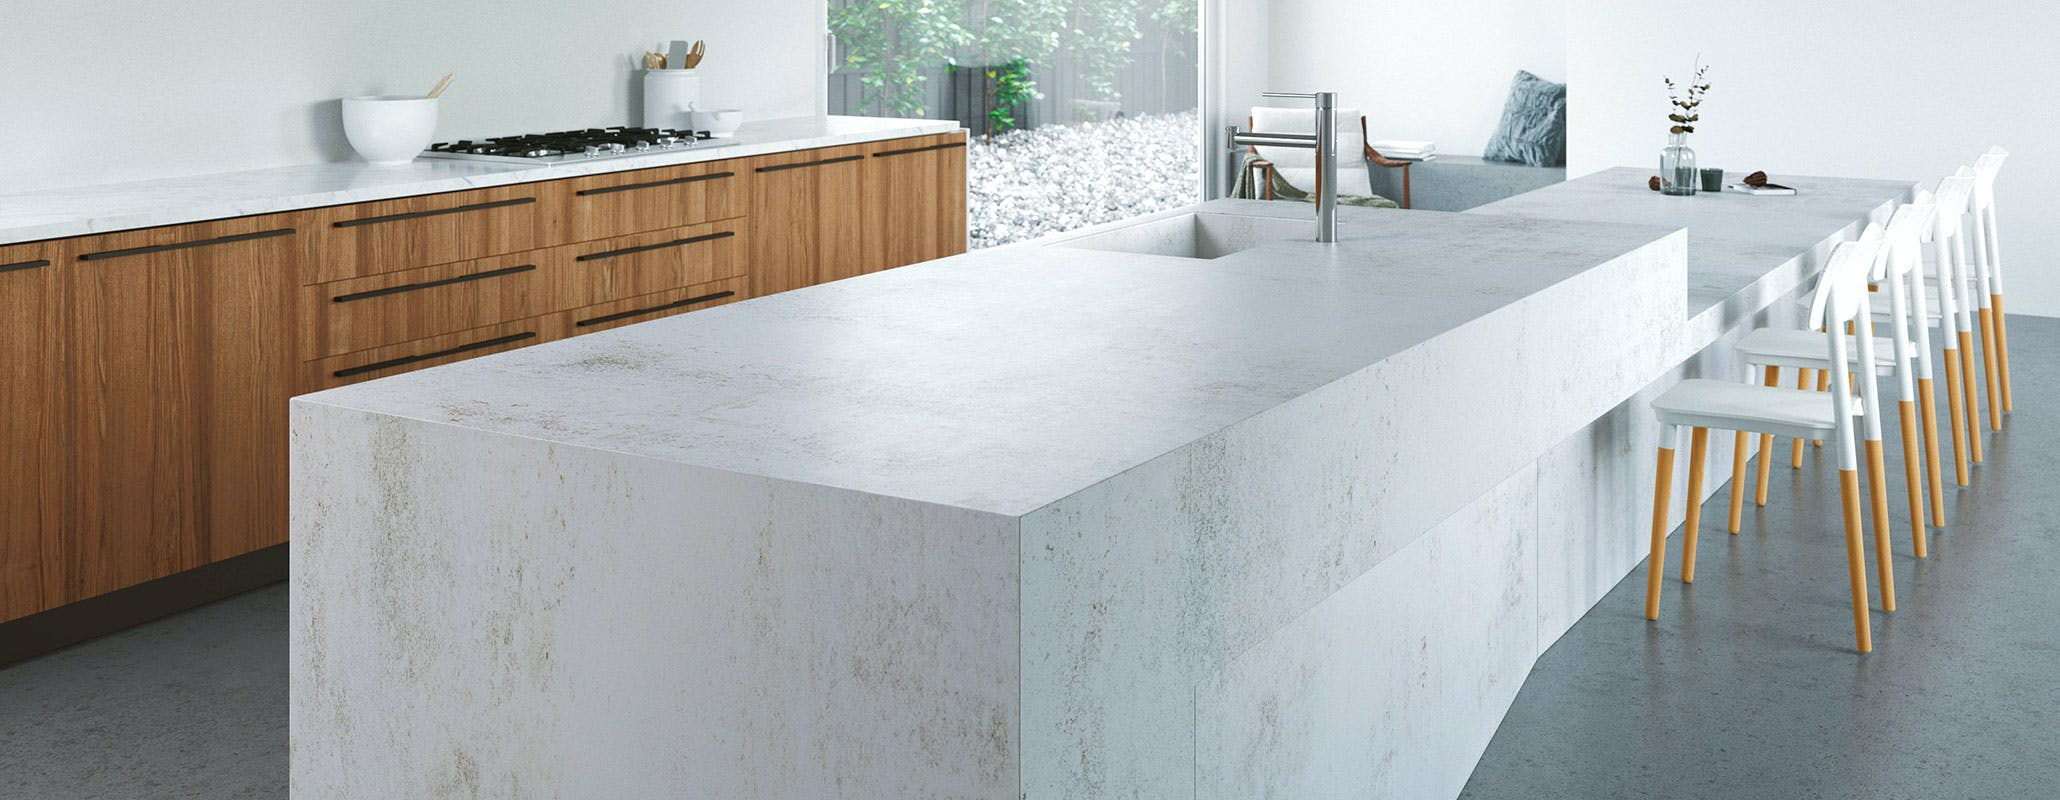 concrete kitchen countertops with New Colors on How To Install Tiles On A Kitchen Countertop besides New Colors besides Cargo Trailer C er Conversion also Showcase likewise Interior Family Friendly Home.